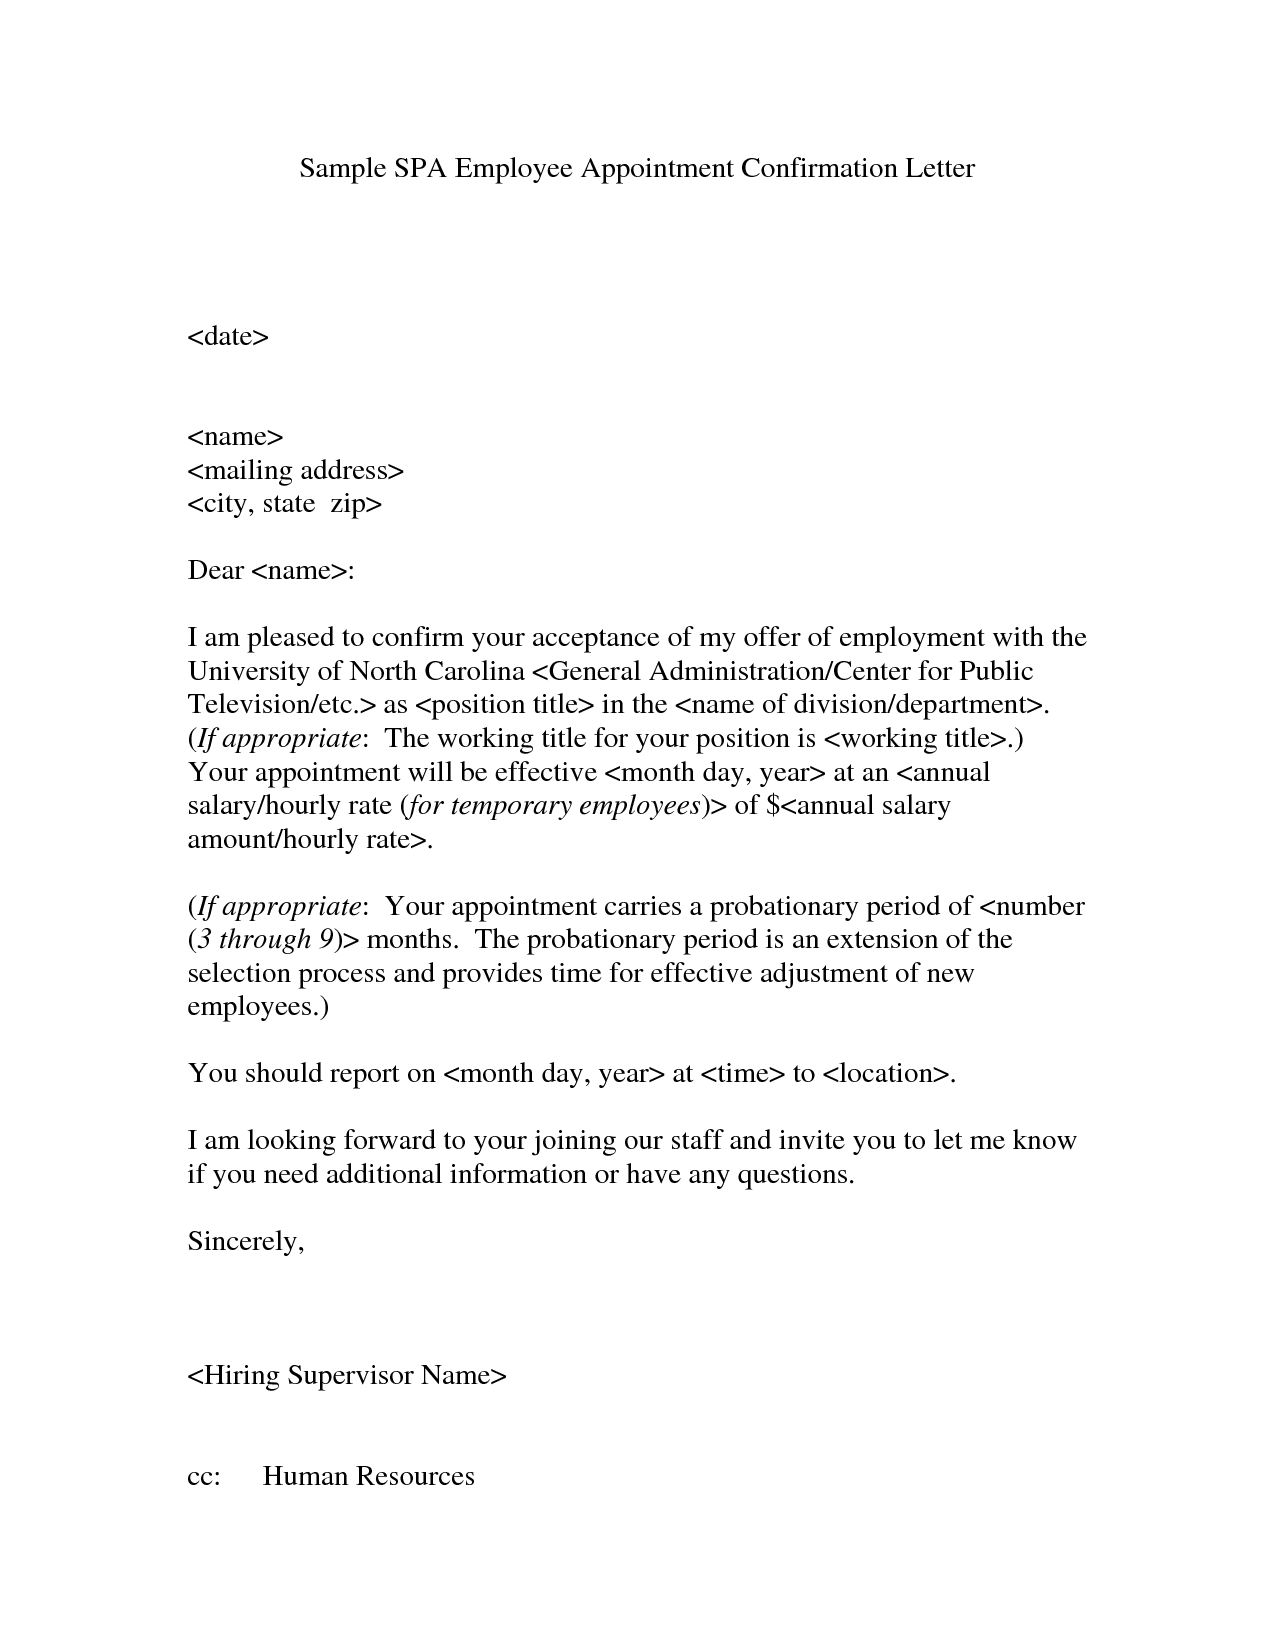 Appointment confirmation letter confirmation of appointment appointment confirmation letter confirmation of appointment letter sample helps you how to write a letter aljukfo Images